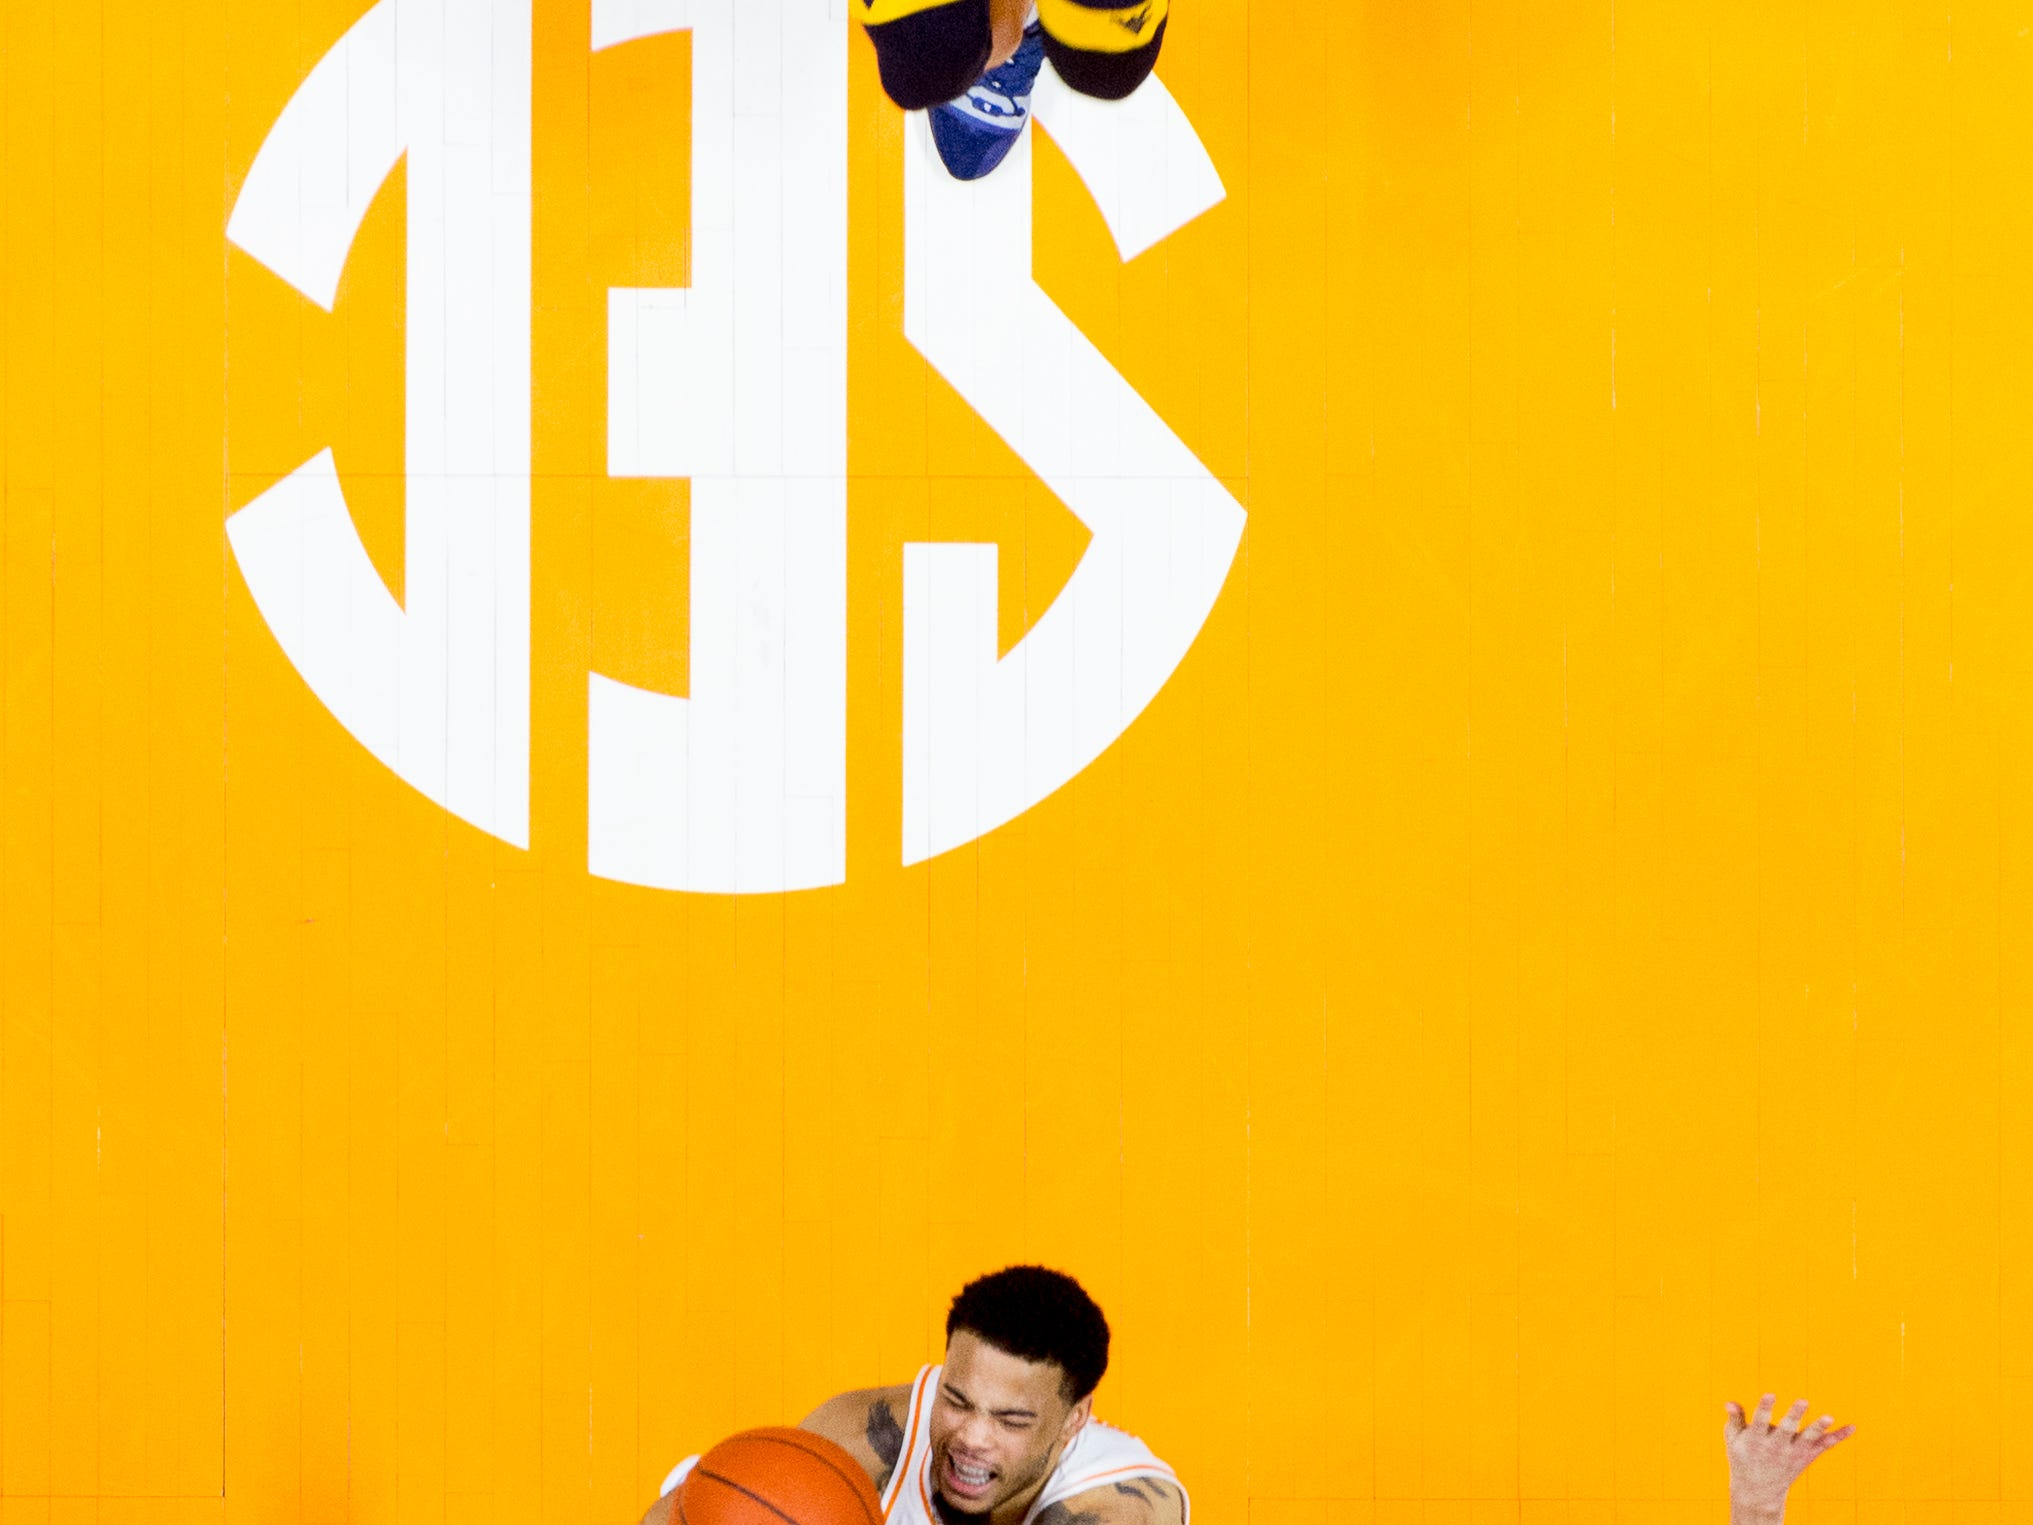 Tennessee guard Lamonte Turner (1) shoots the ball during a SEC/Big 12 Challenge game between Tennessee and West Virginia at Thompson-Boling Arena in Knoxville, Tennessee on Saturday, January 26, 2019.